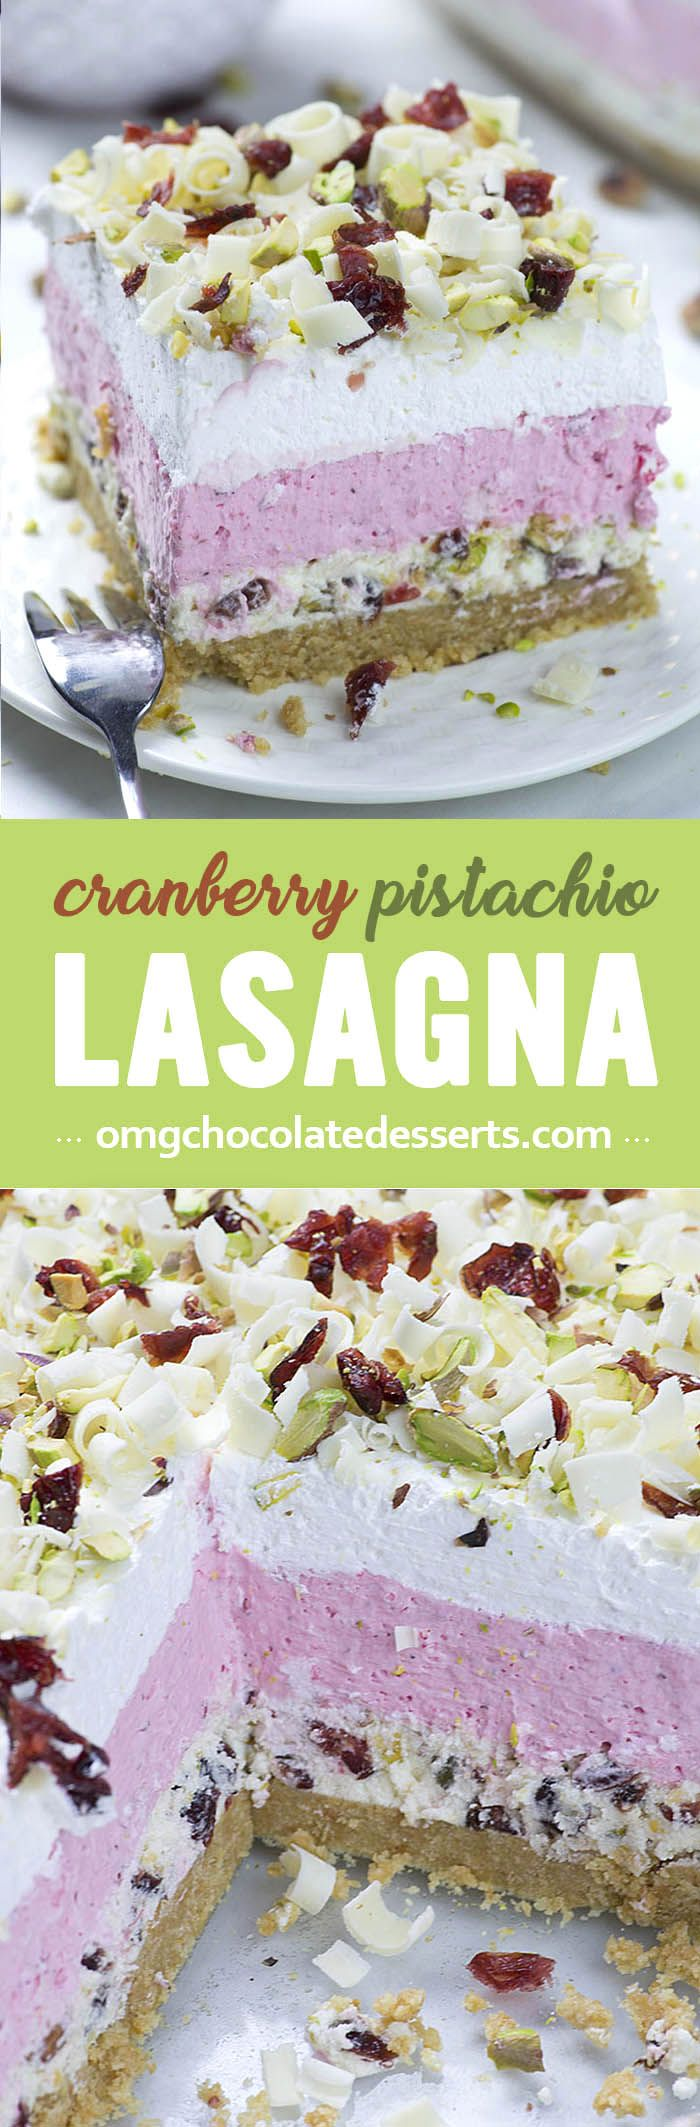 Cranberry Pistachio Lasagna is easy, NO BAKE dessert for Thanksgiving or Christmas gathering.